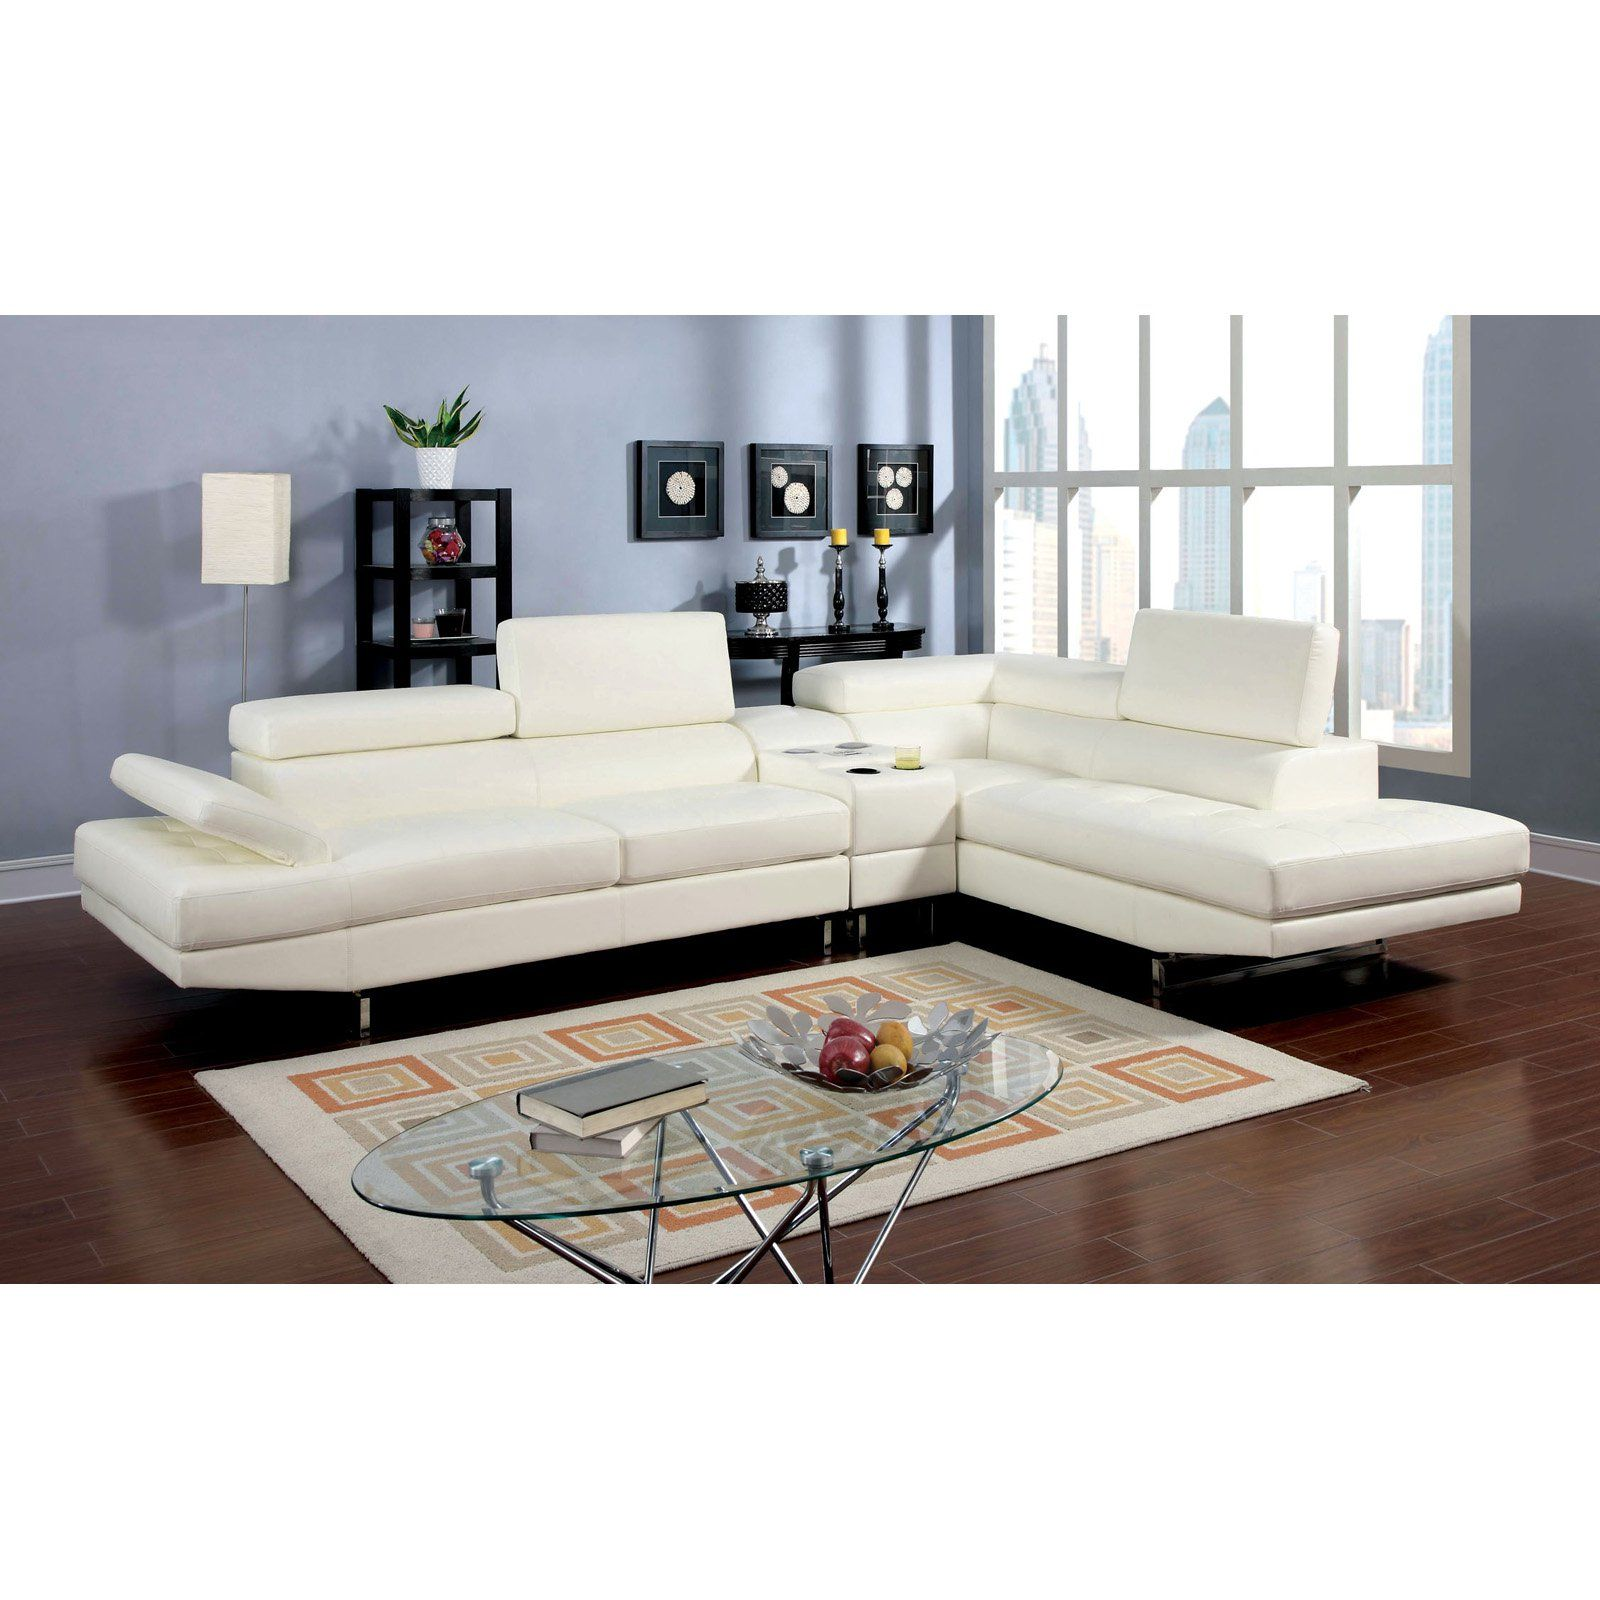 Furniture Of America Roselyn 2 Piece Sectional Sofa With Optional Console Frederick White Tufted